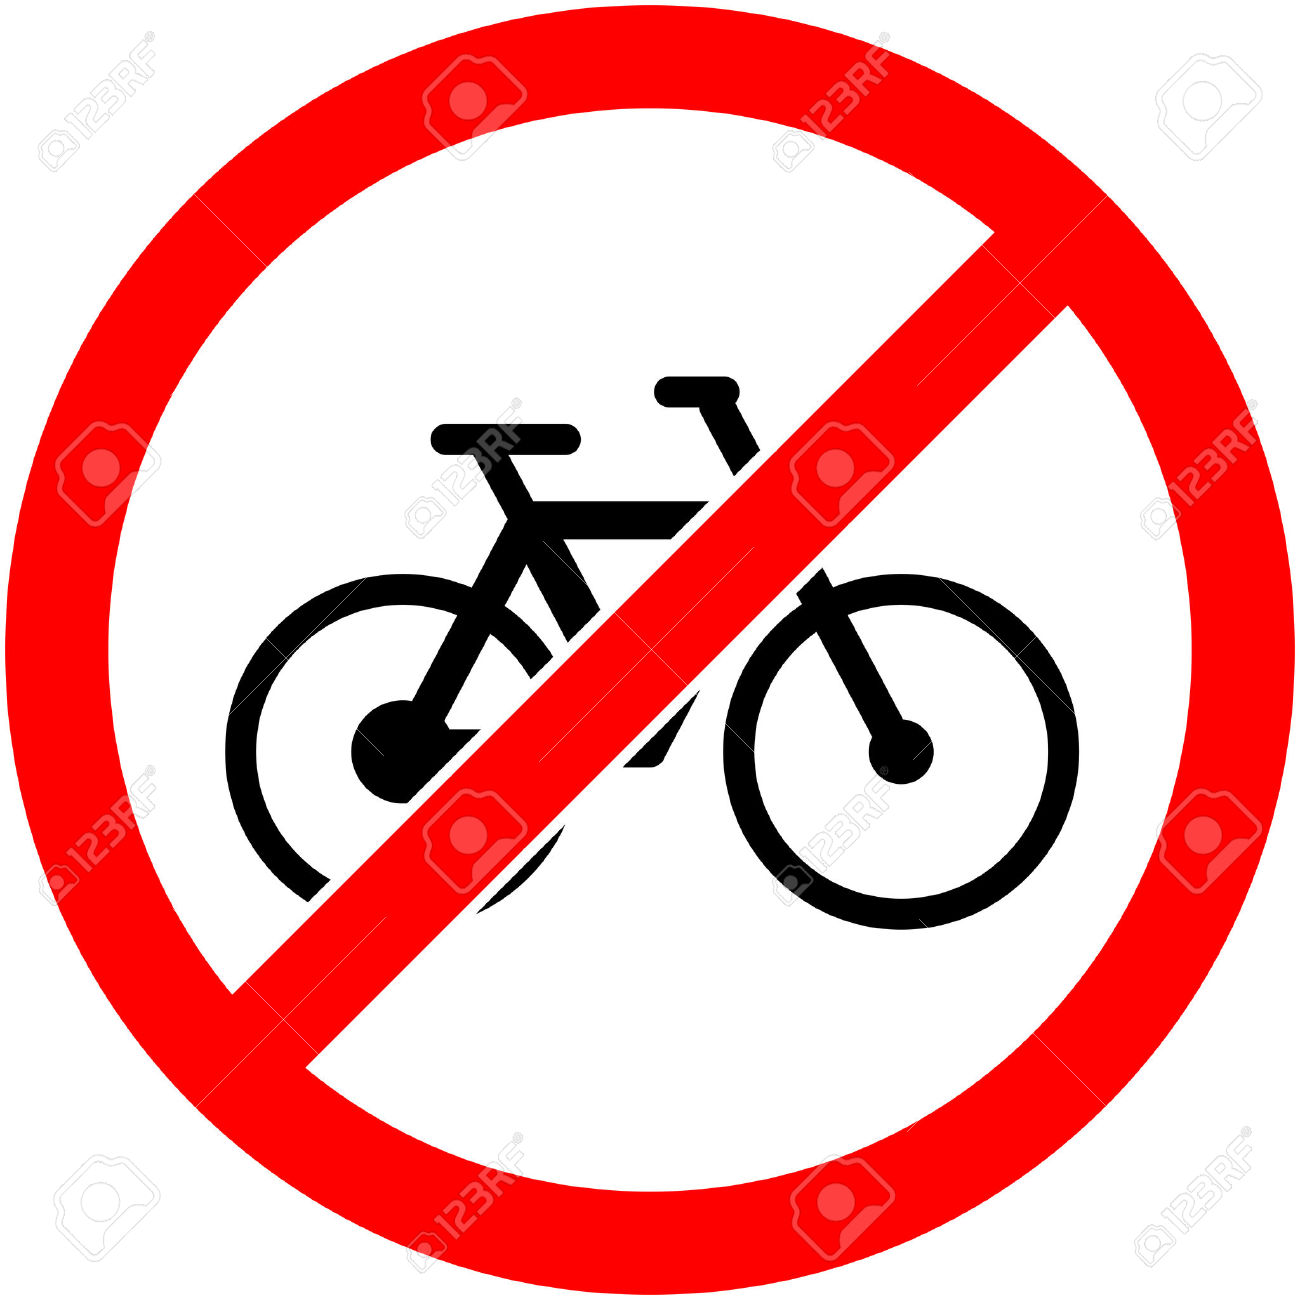 No Bicycle, Bike Prohibited Symbol. Sign Indicating The.